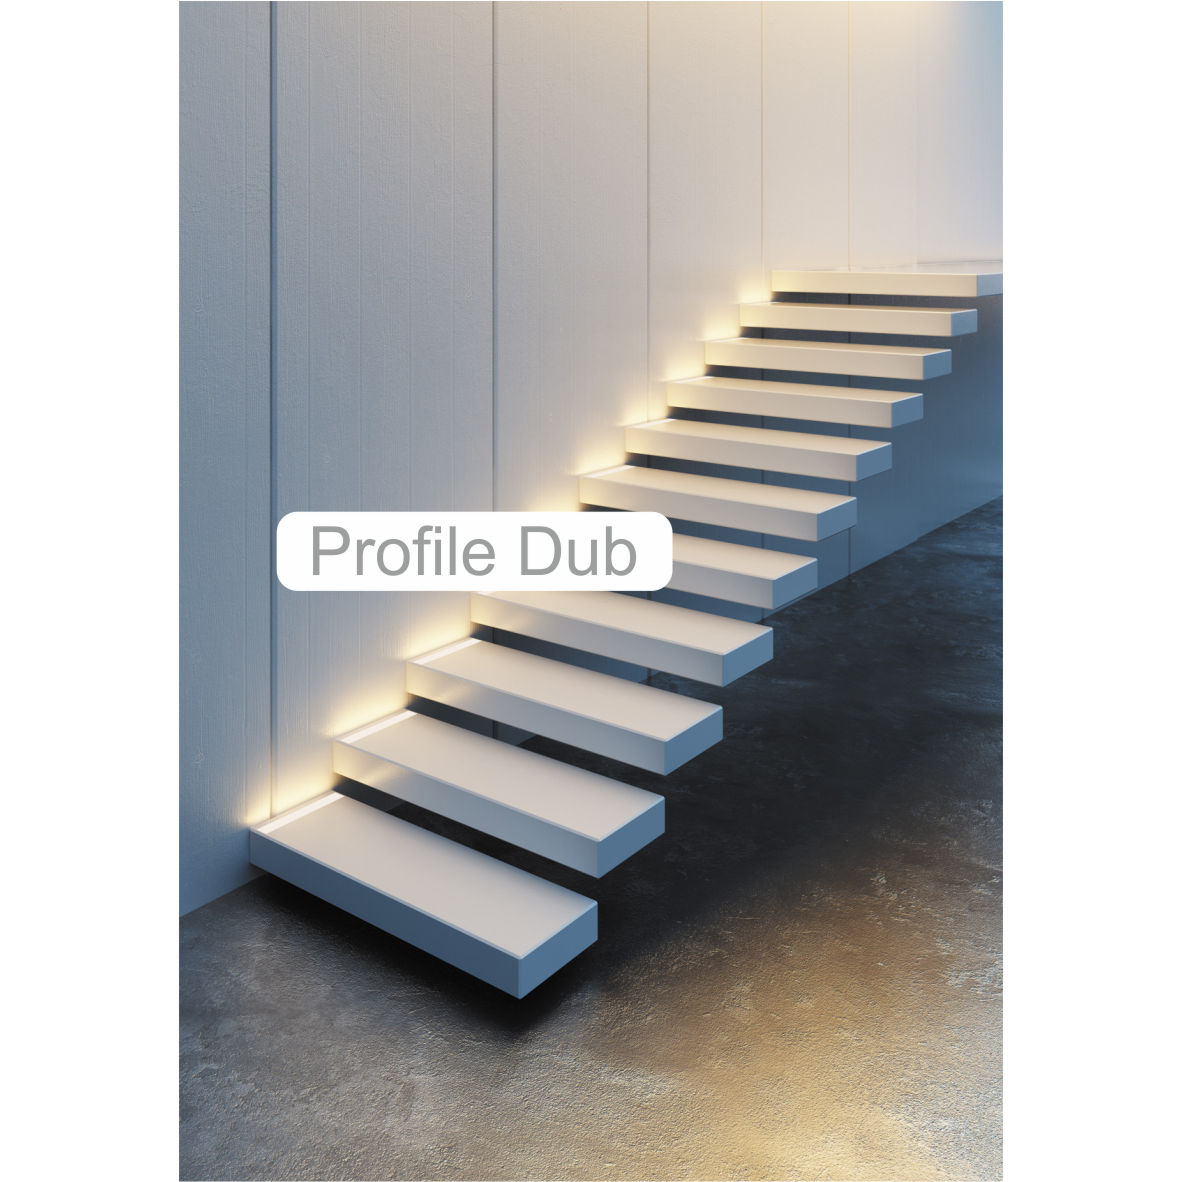 Ruban Led Pour Escalier Escalier Sol Led Production